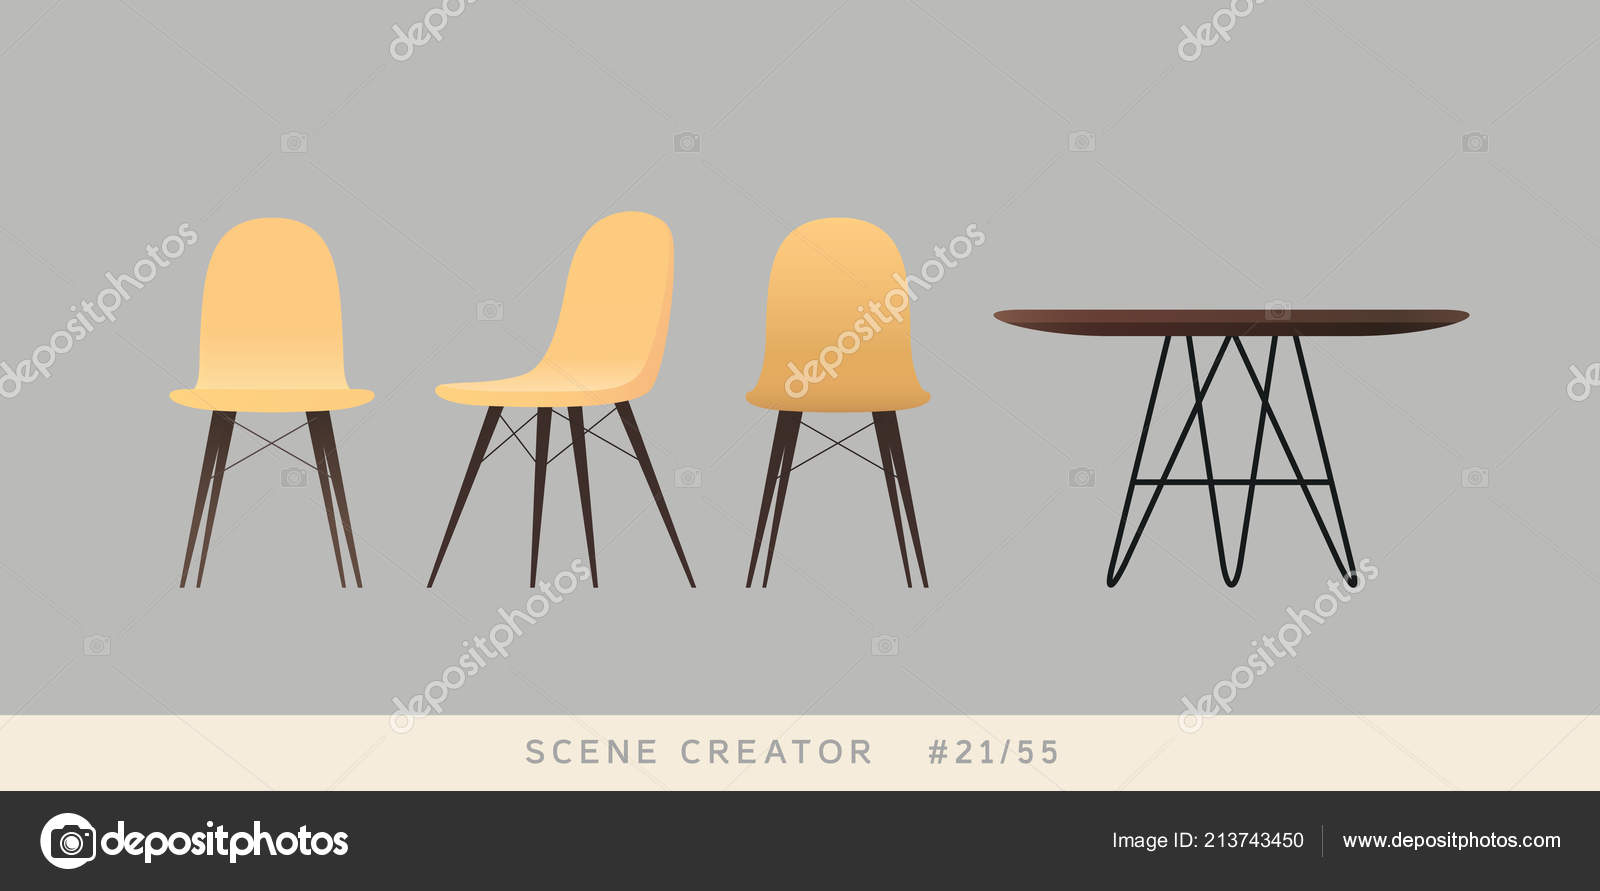 Eames Tisch Eames Chairs Table Isolated Objects Interior Scene Creator Set